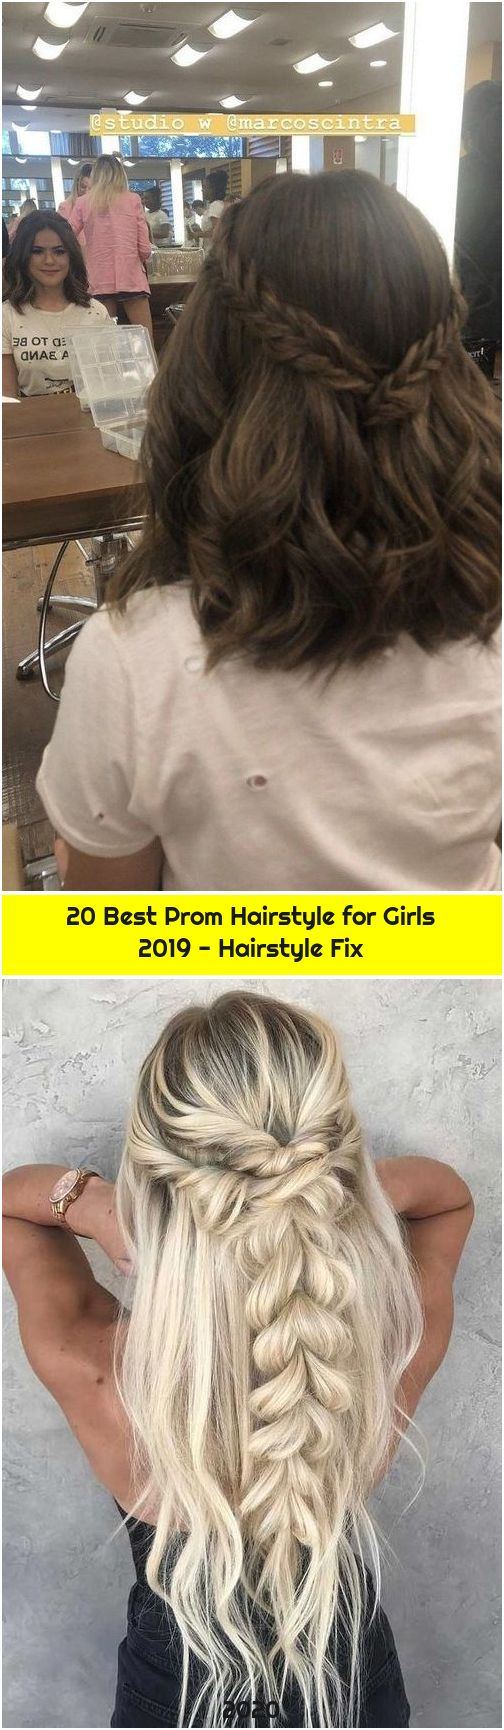 20 Best Prom Hairstyle for Girls 2019 - Hairstyle Fix